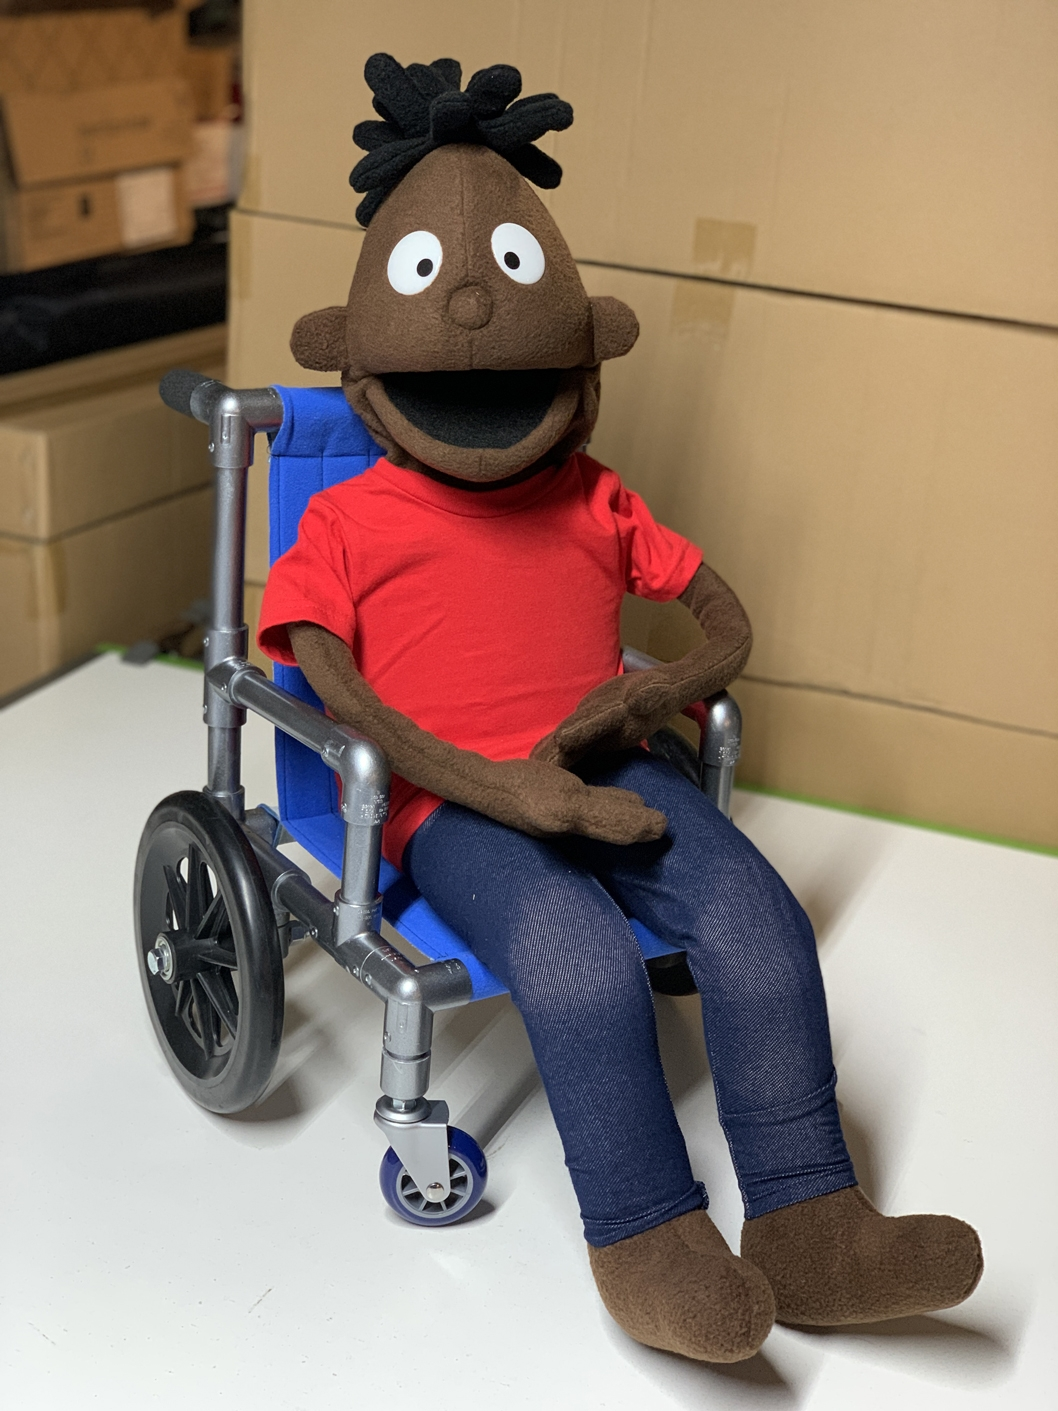 Custom Puppet Wheelchair by Kristofer Sommerfeld